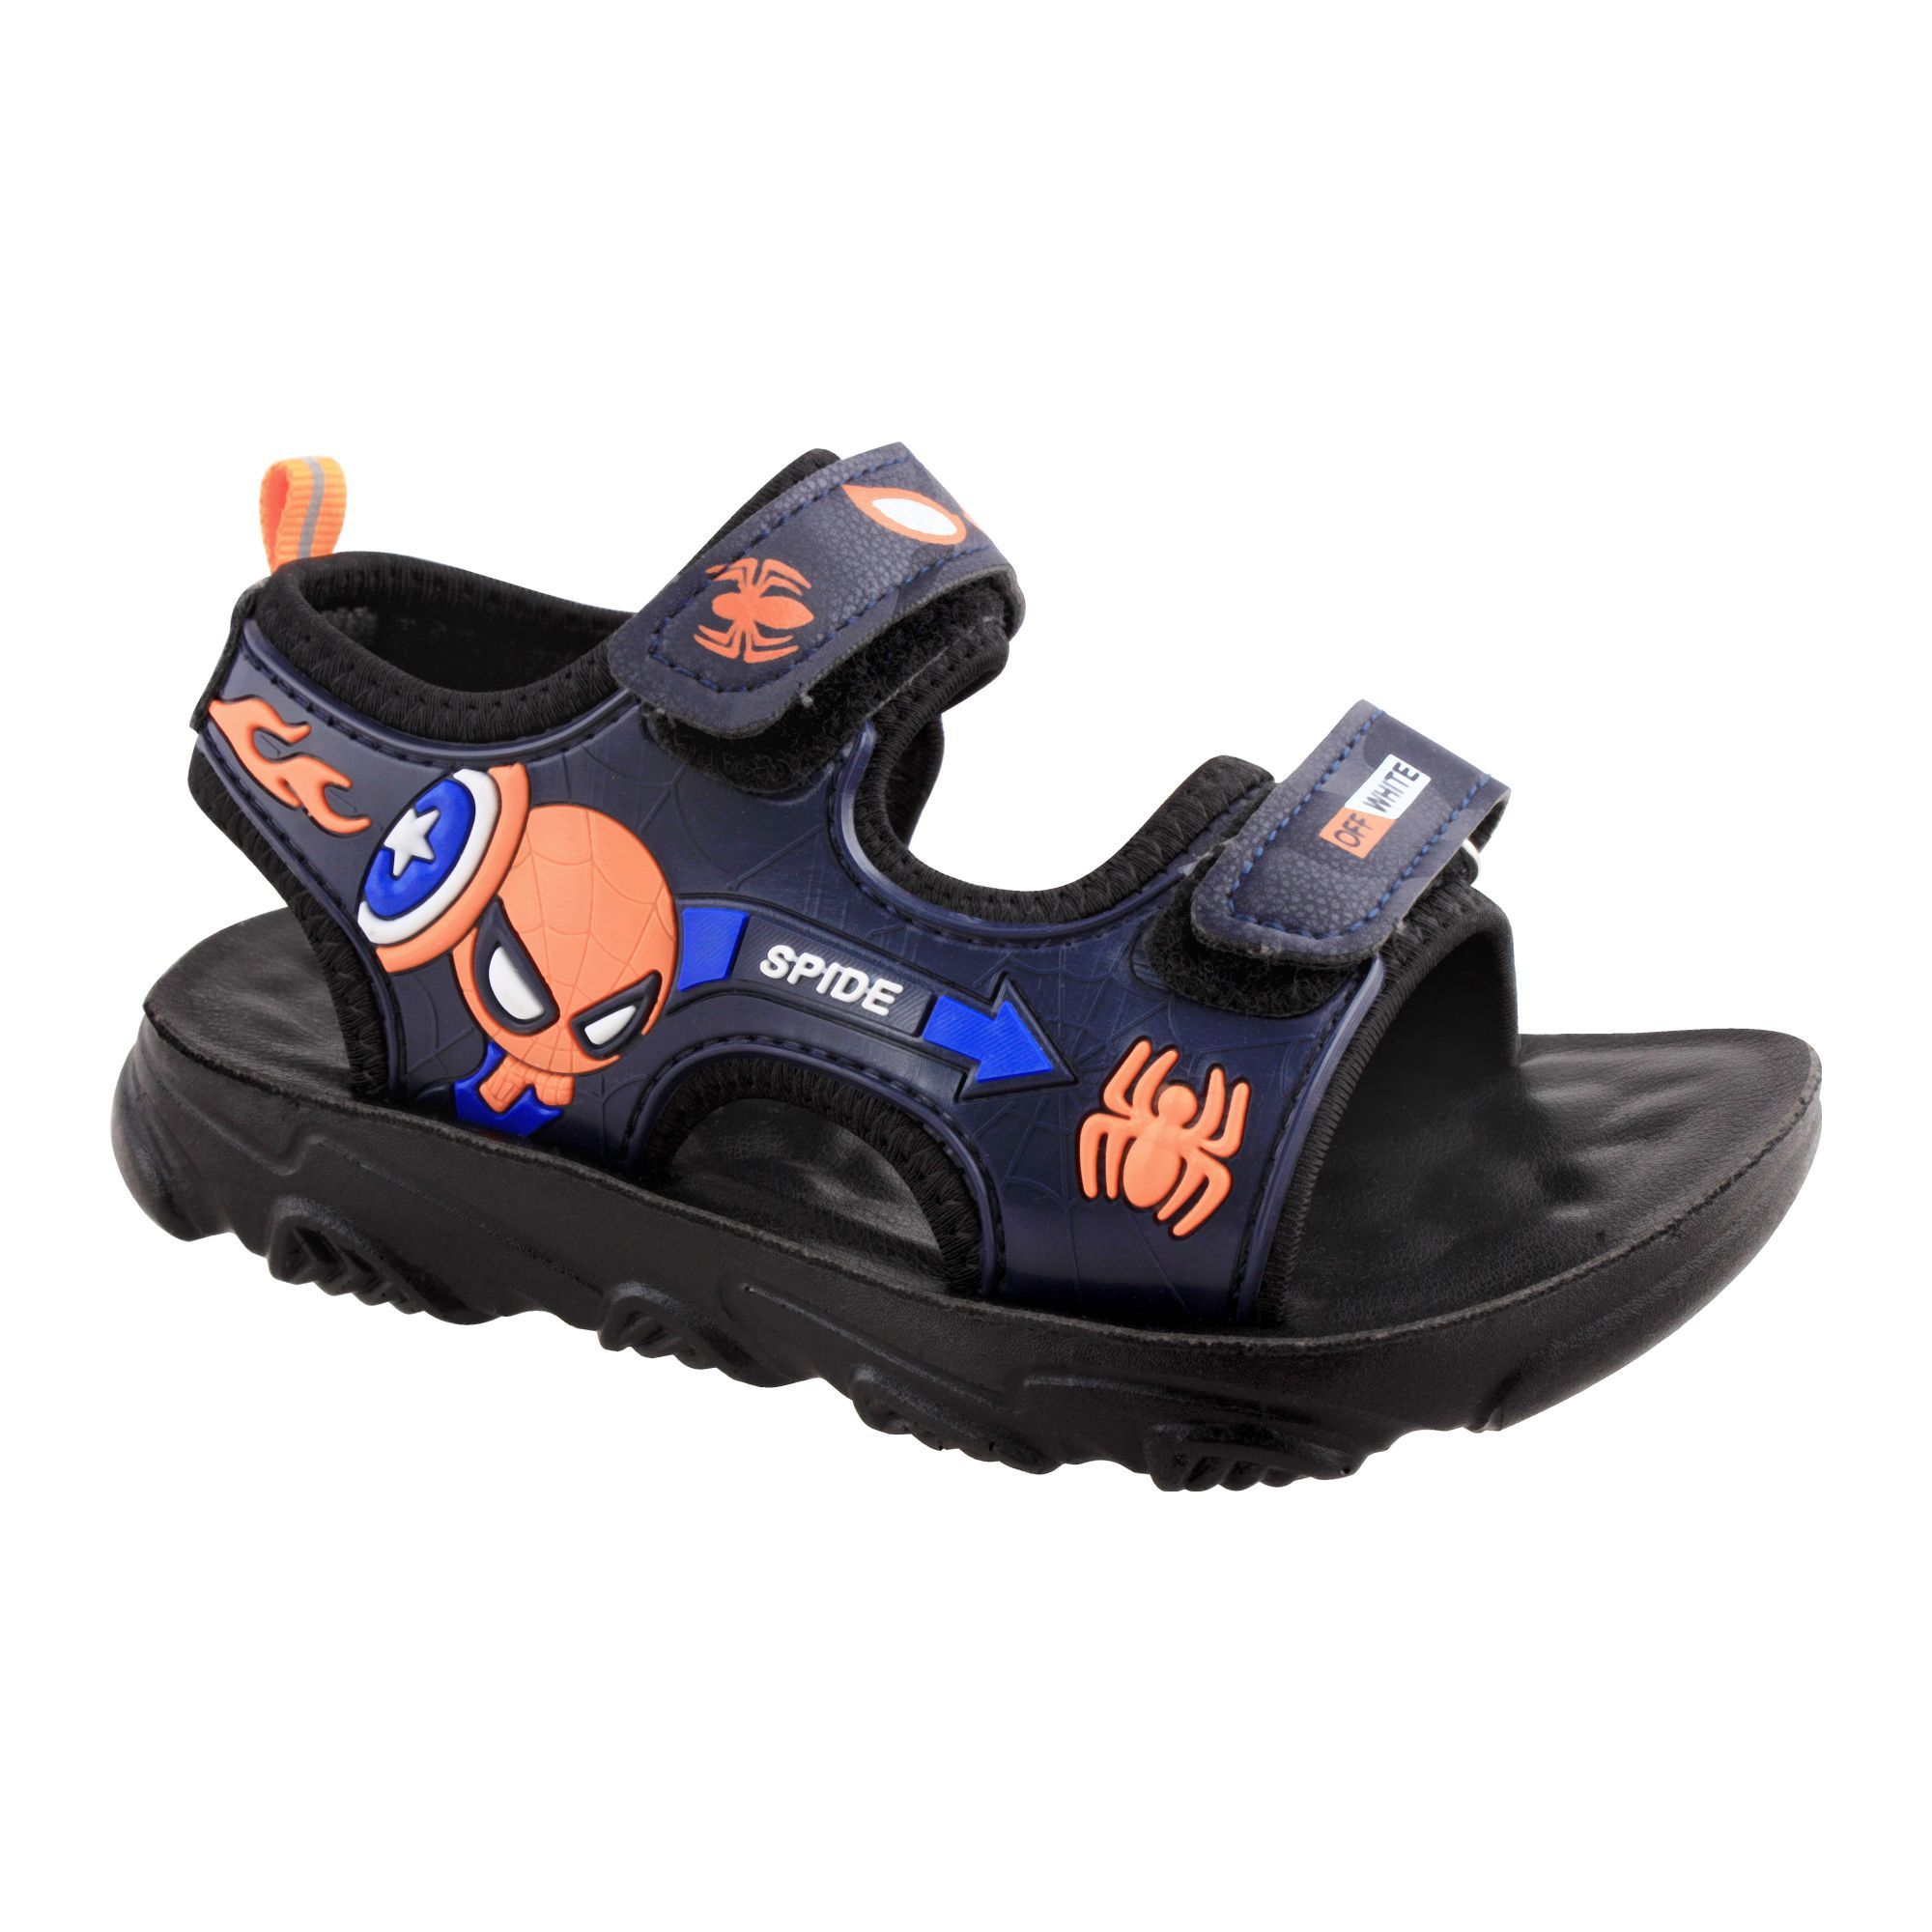 Buy Kids Sandals, For Boys, B-10, Blue Online at Special Price in Pakistan  - Naheed.pk